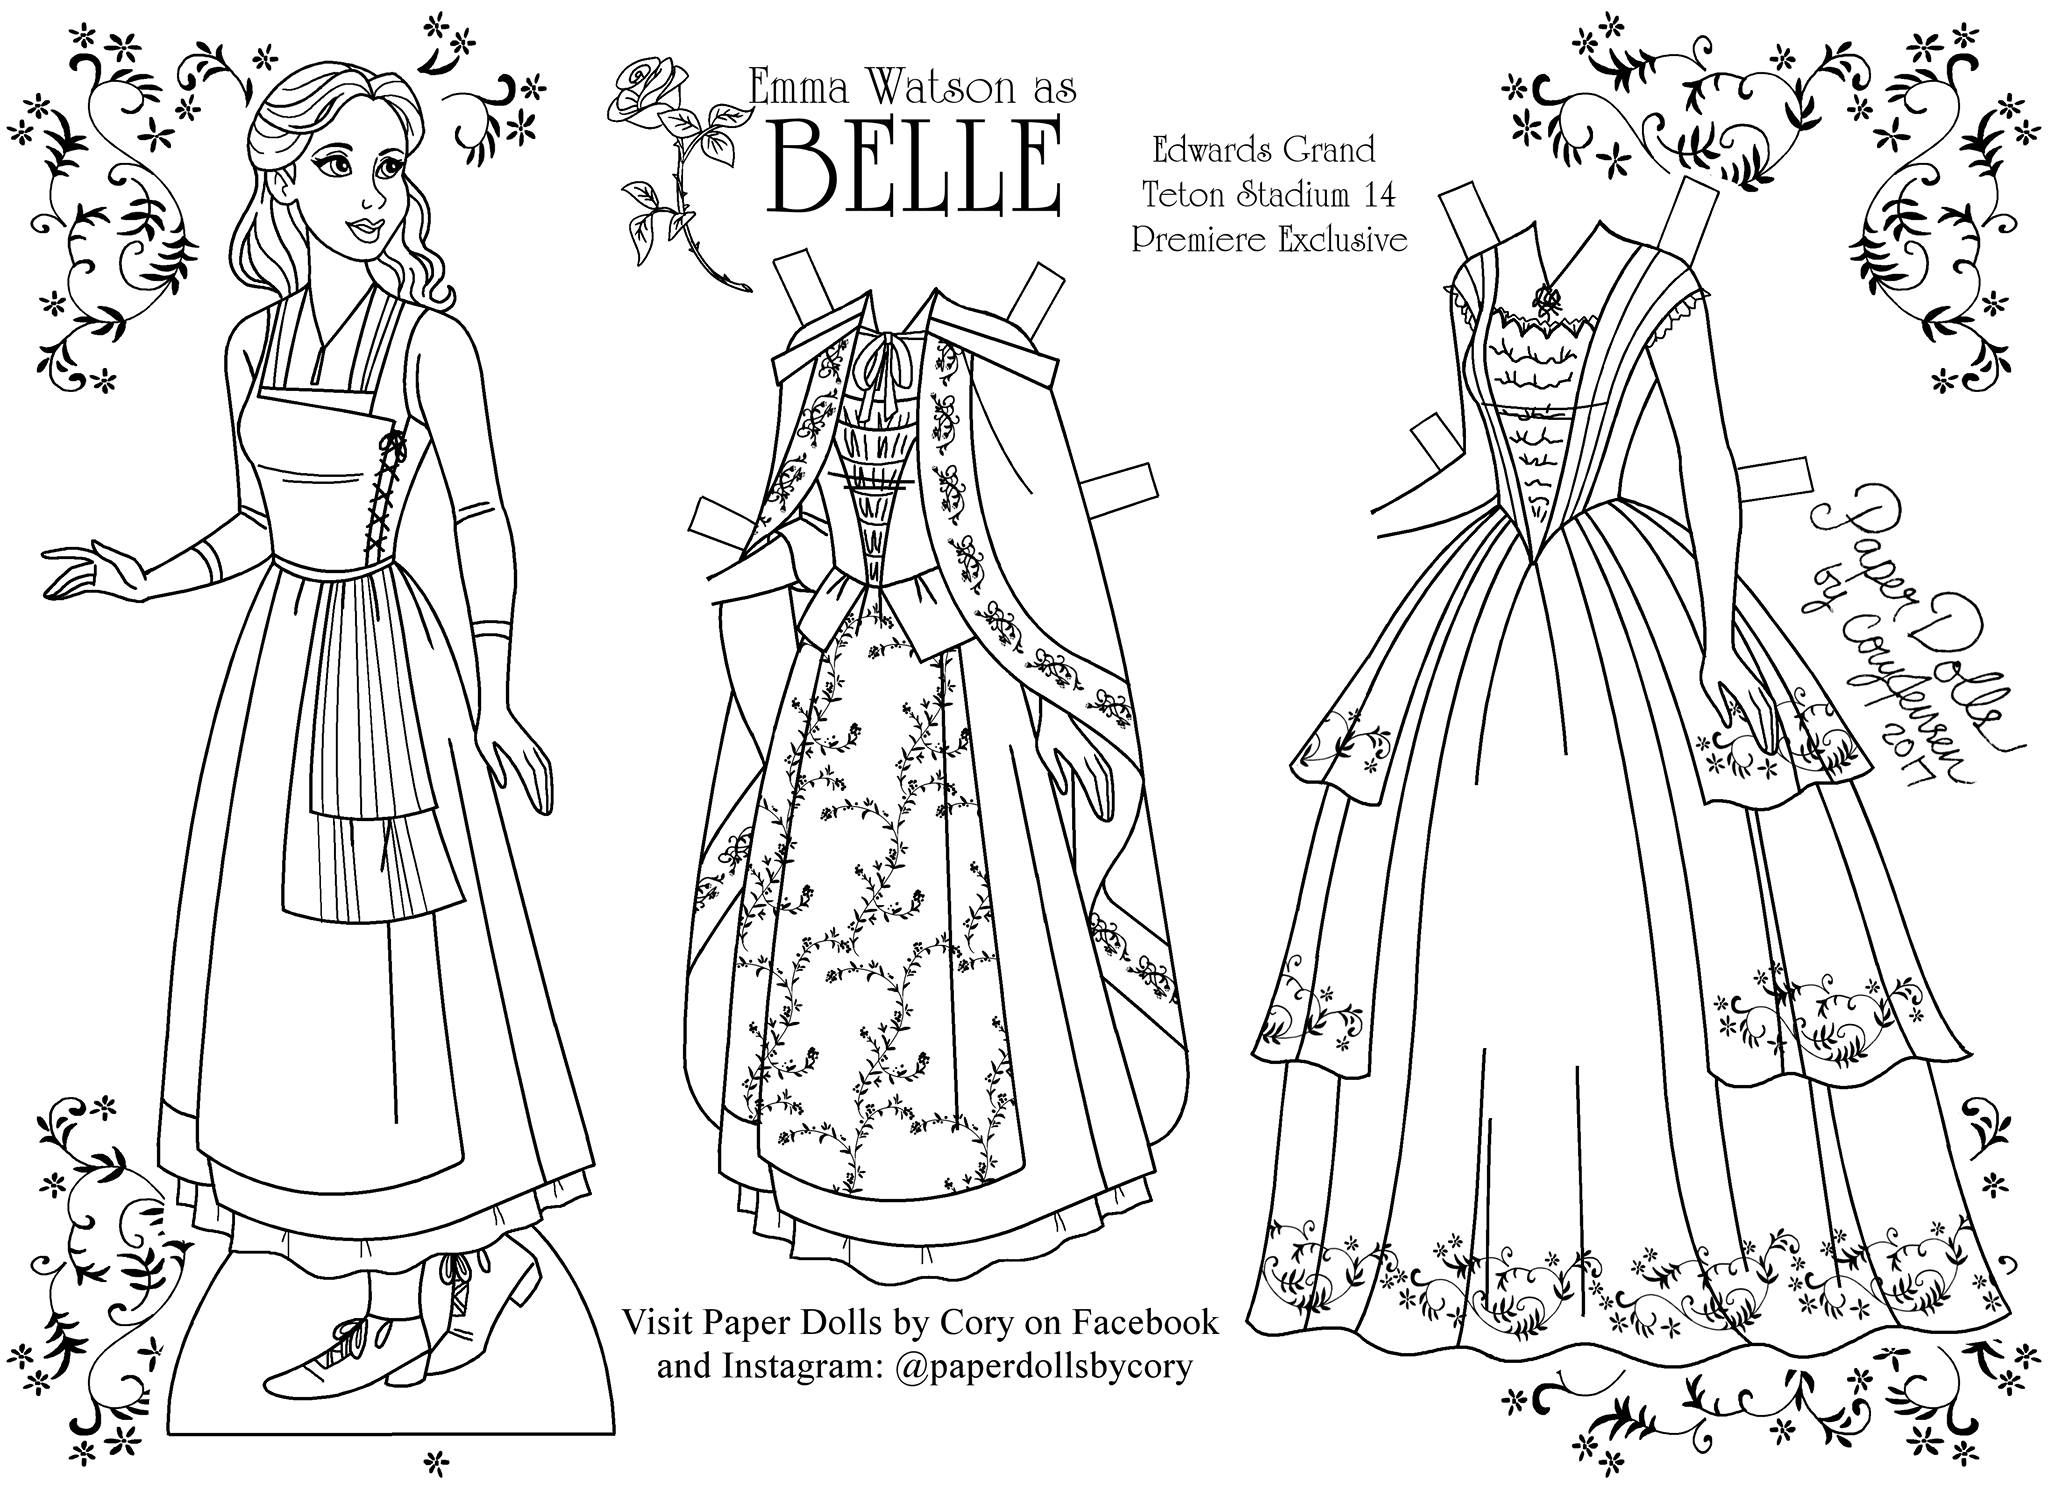 Https Www Facebook Com Pg Paperdollsbycory Photos Ref Page Internal Barbie Paper Dolls Princess Paper Dolls Printable Princess Paper Dolls